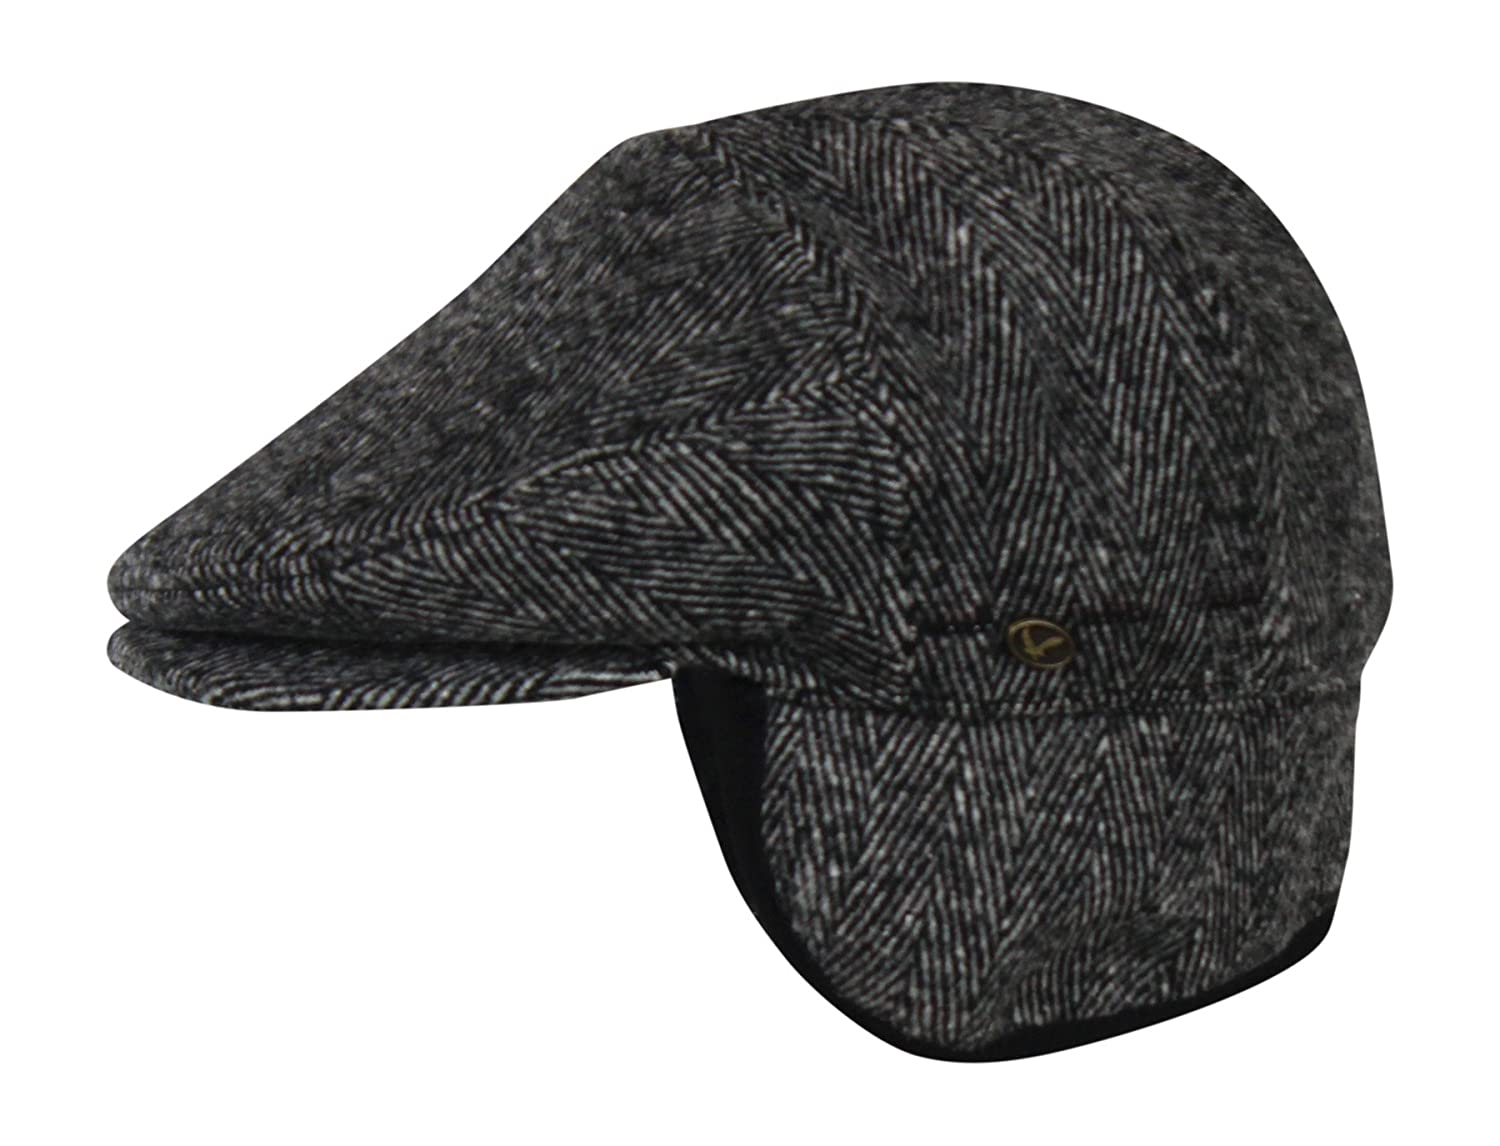 0276c553c4b6c 100% Wool Herringbone Winter Ivy Cabbie Hat w Fleece Earflaps - Driving Hat  at Amazon Men s Clothing store